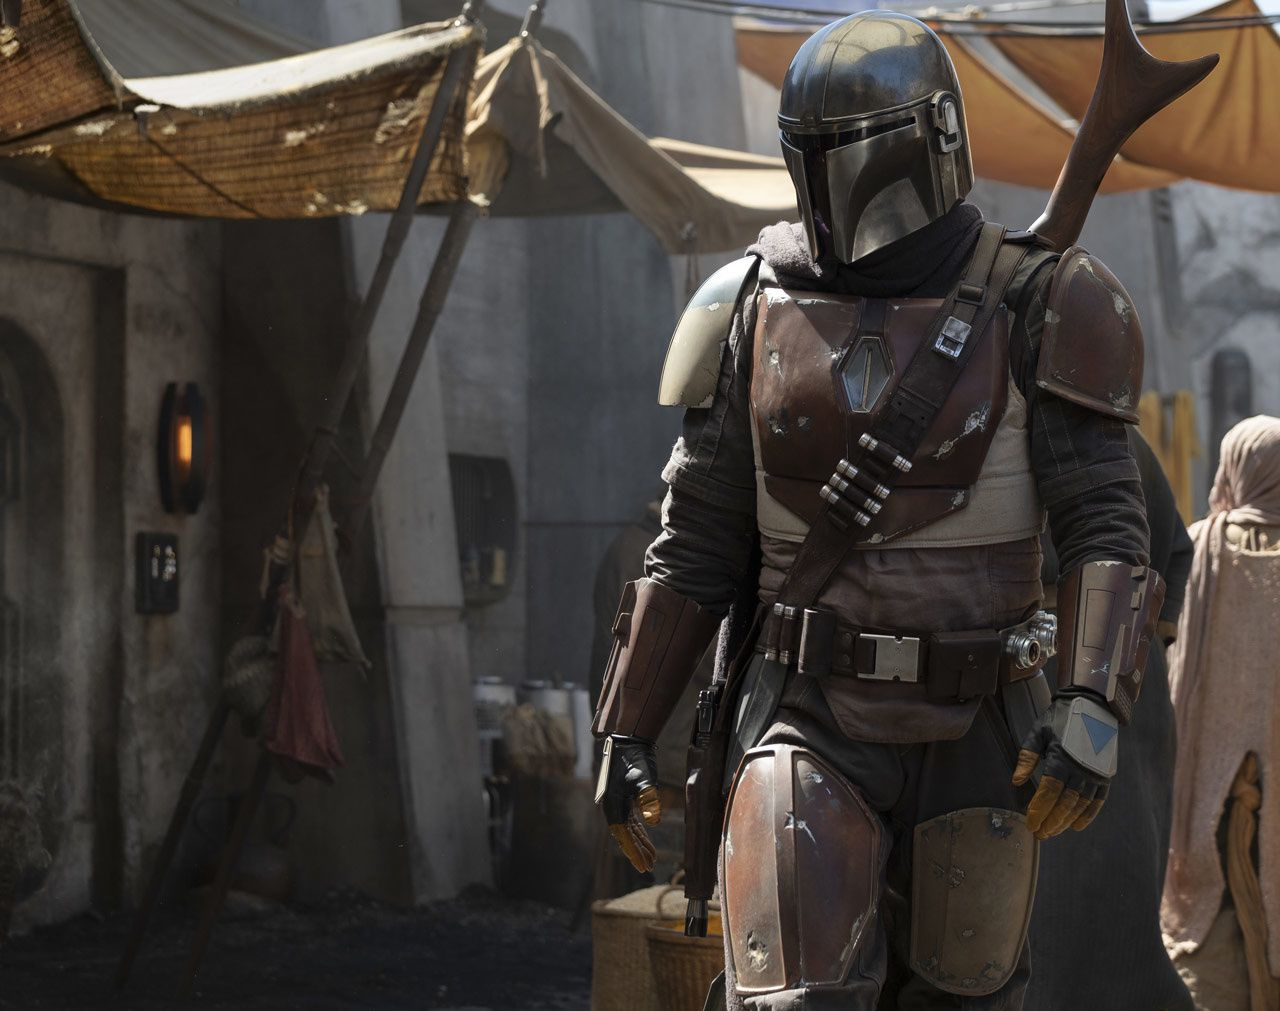 Star Wars : la série s'intitulera The Mandalorian (photo et synopsis)